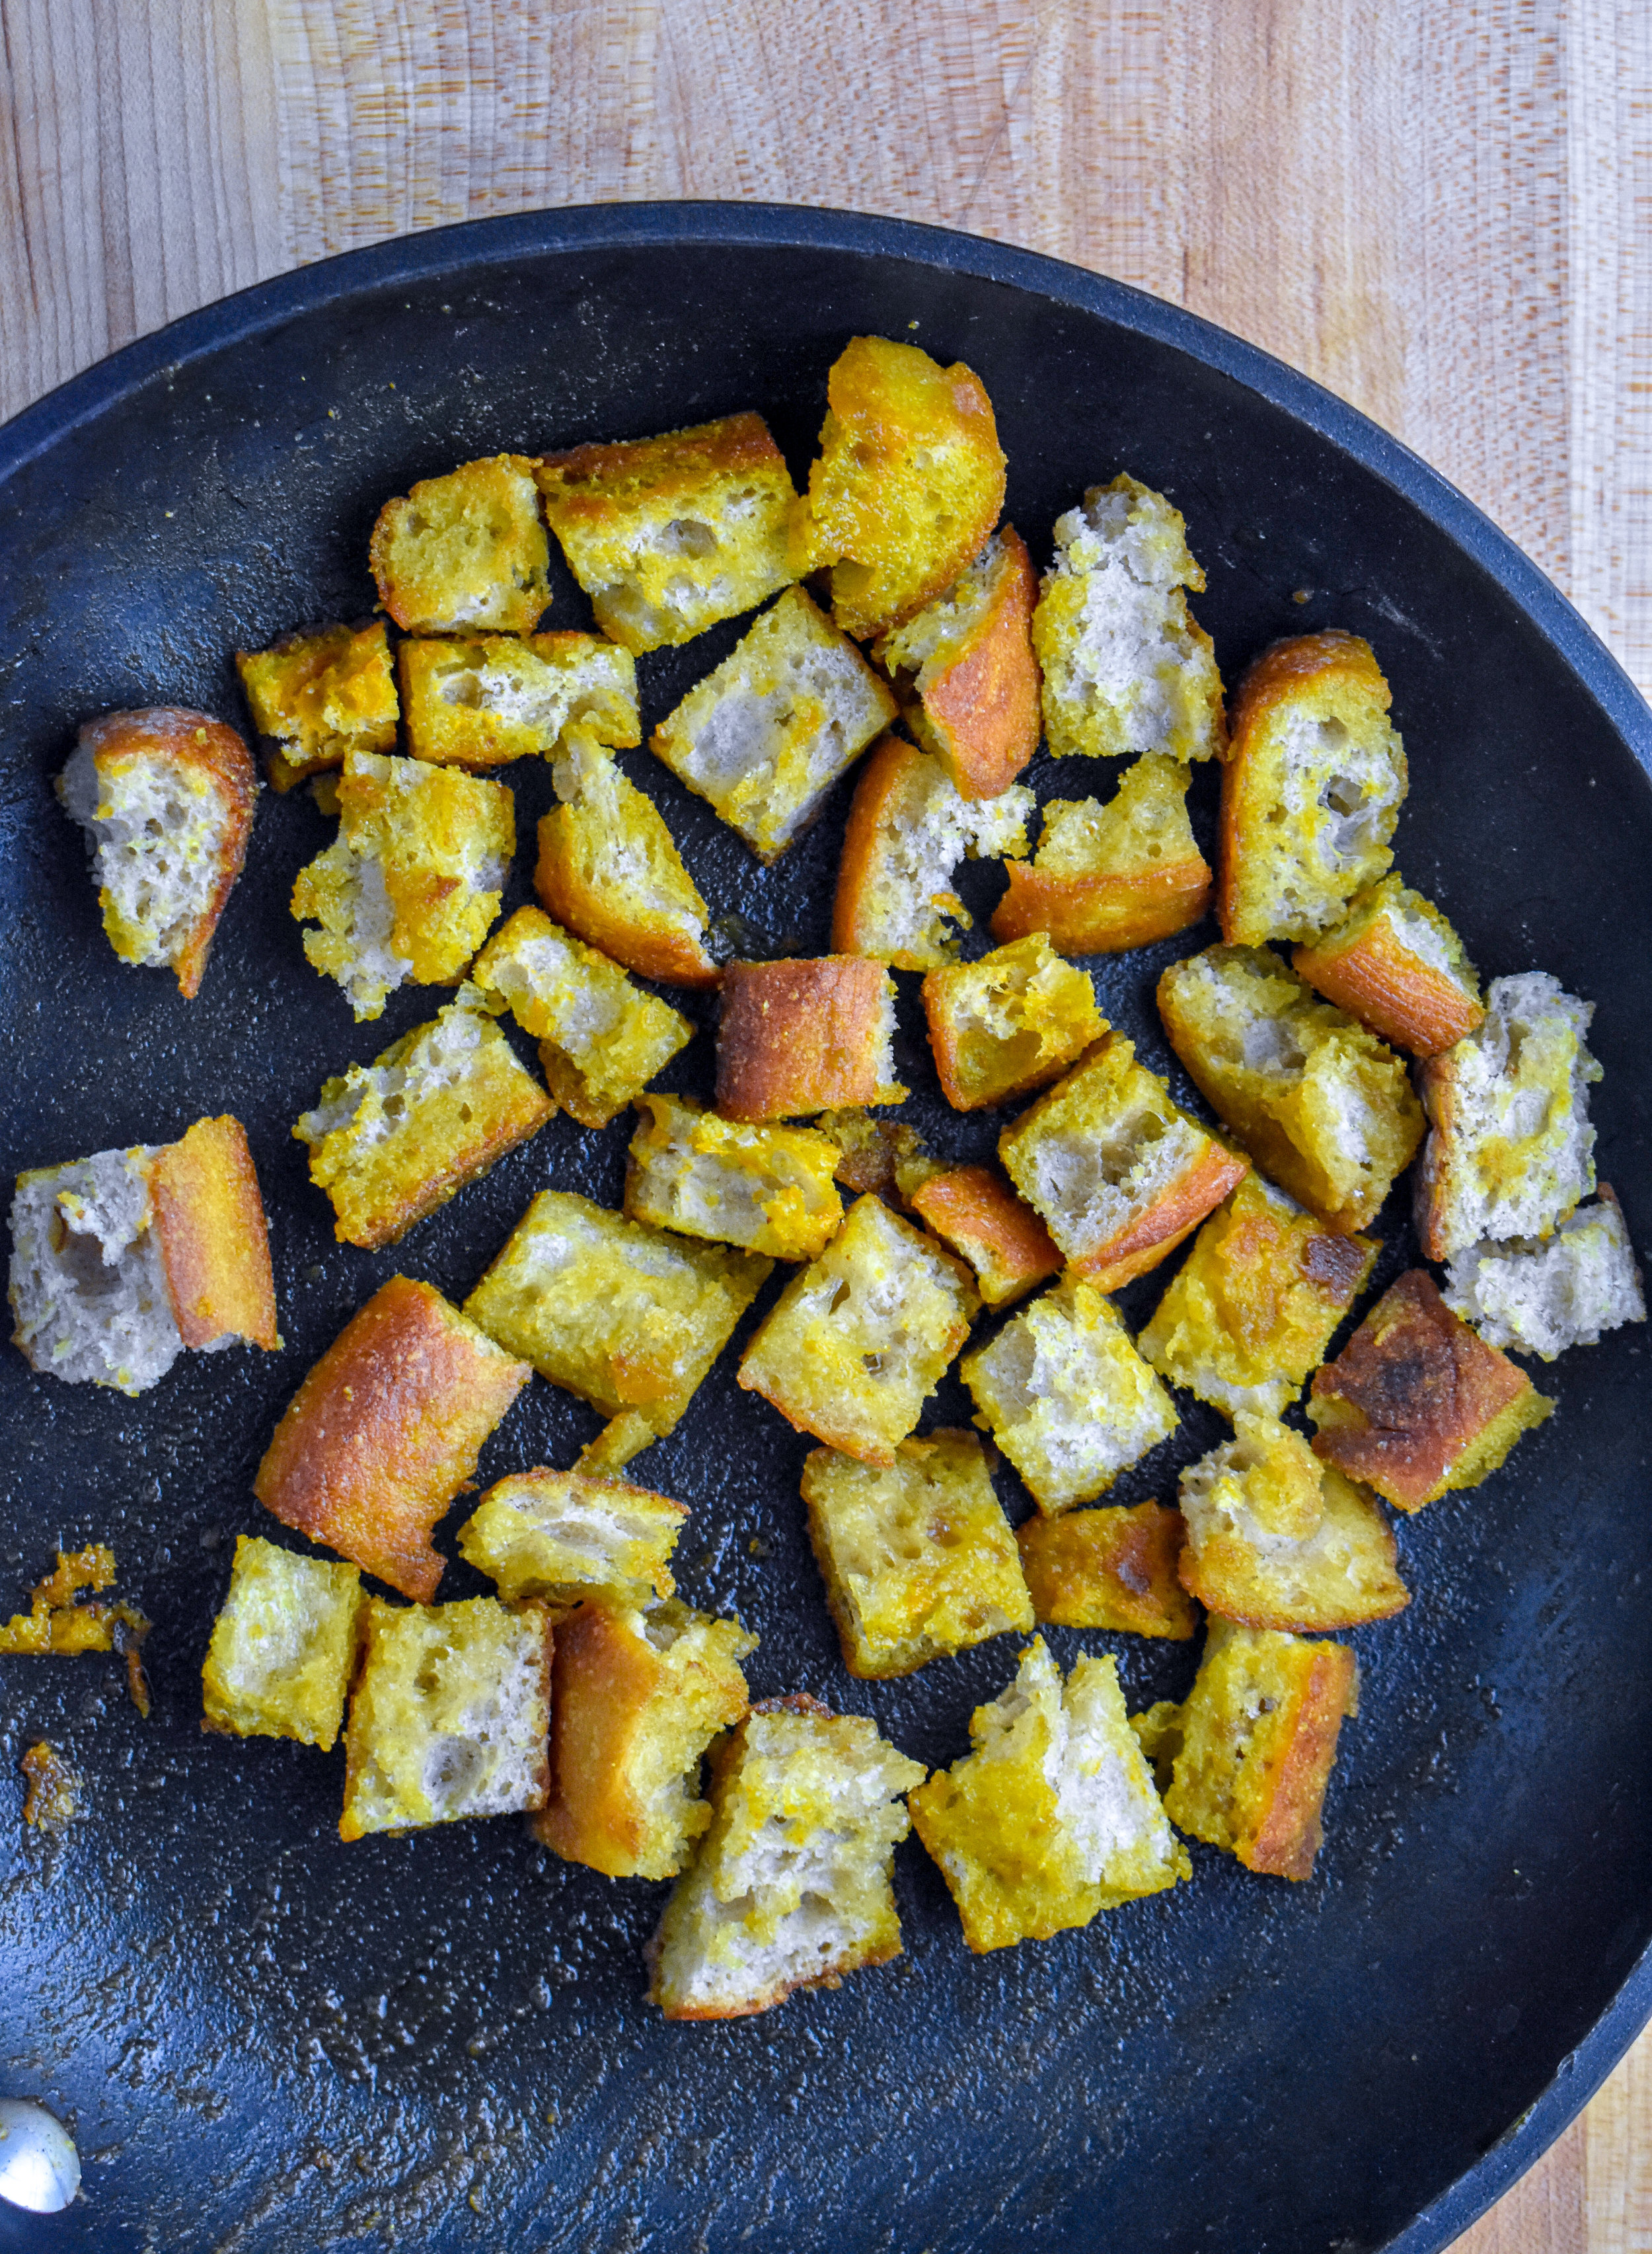 2. Once butter begins to pop, add the bread cubes, coat well and add spices. Cook 3-4 minutes over medium heat, flip cook another 3-4 minutes. Set aside.